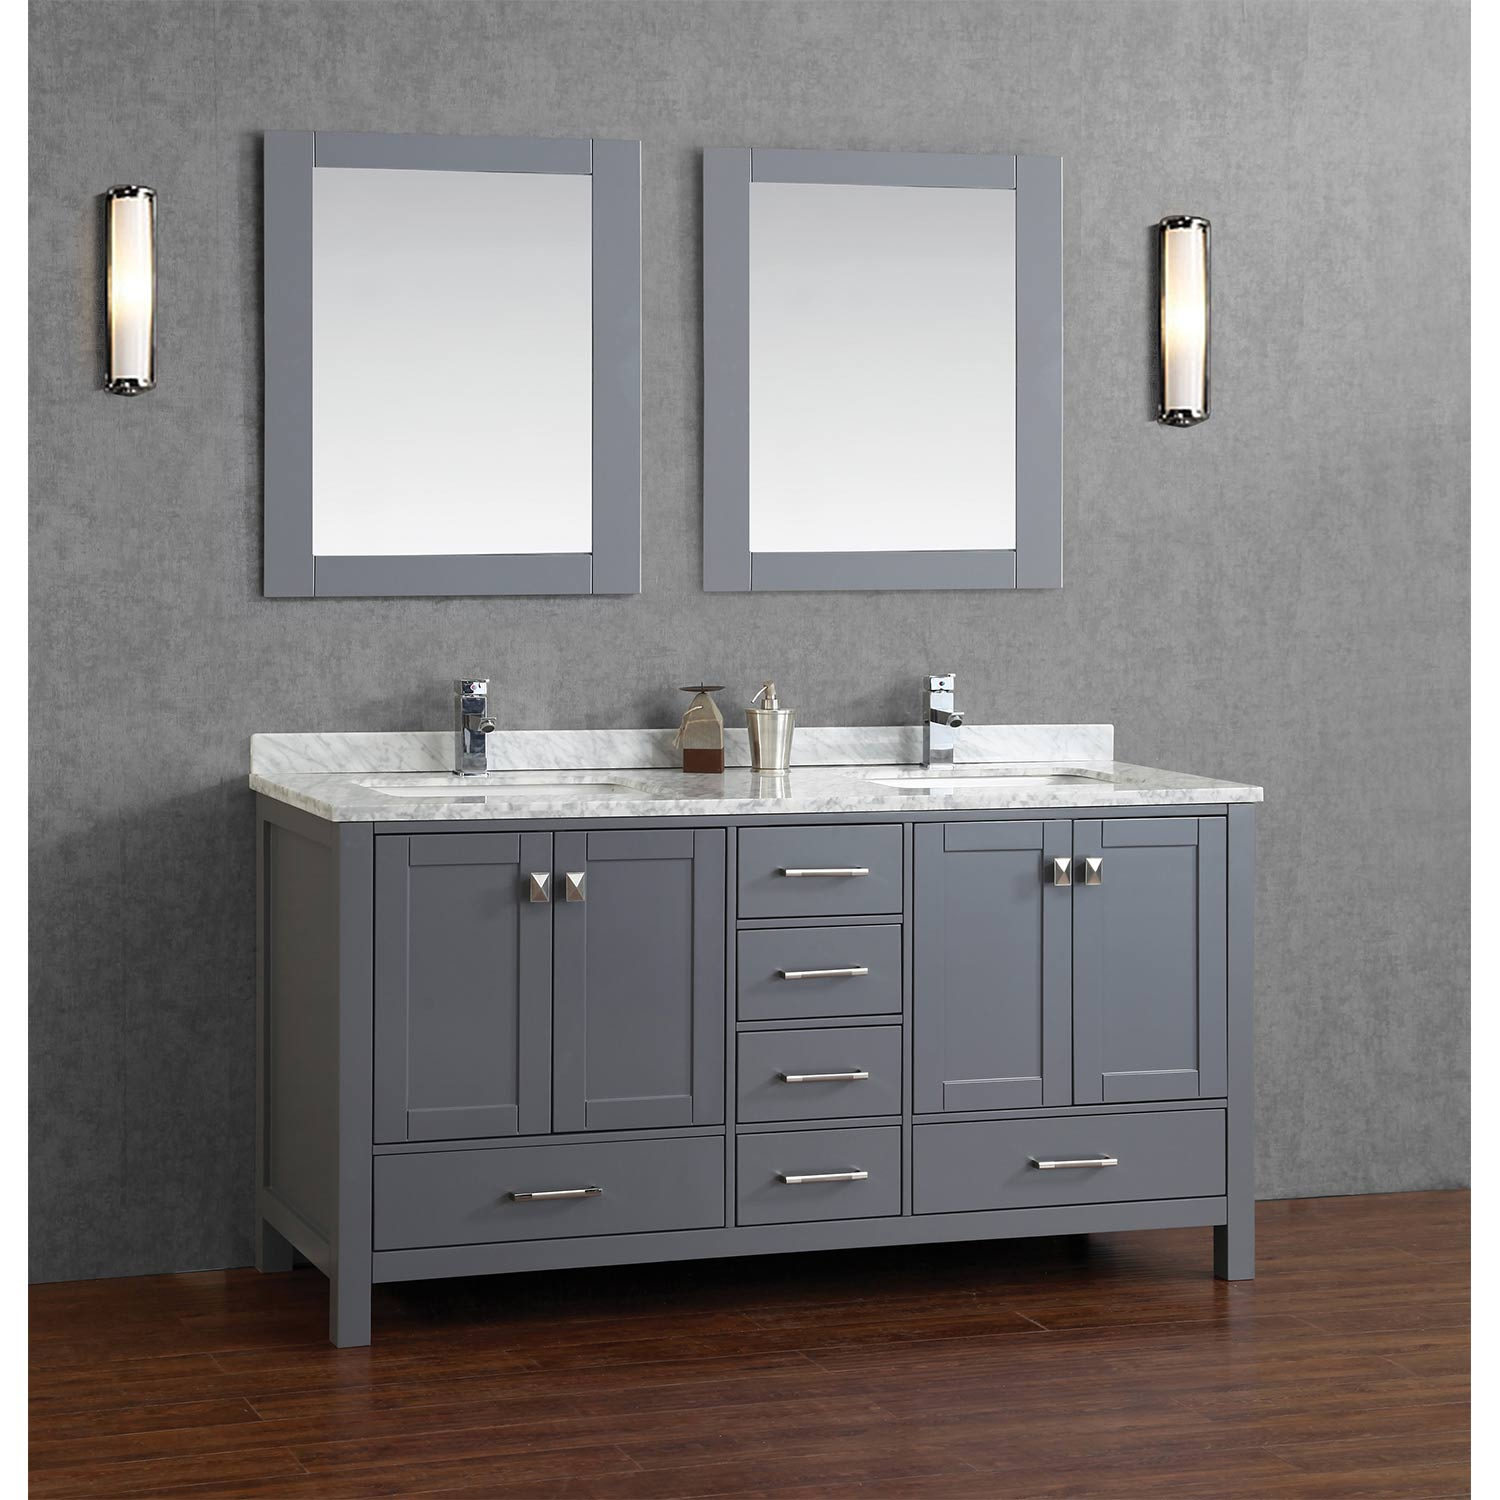 Buy vincent 72 inch solid wood double bathroom vanity in for Double basin bathroom sinks